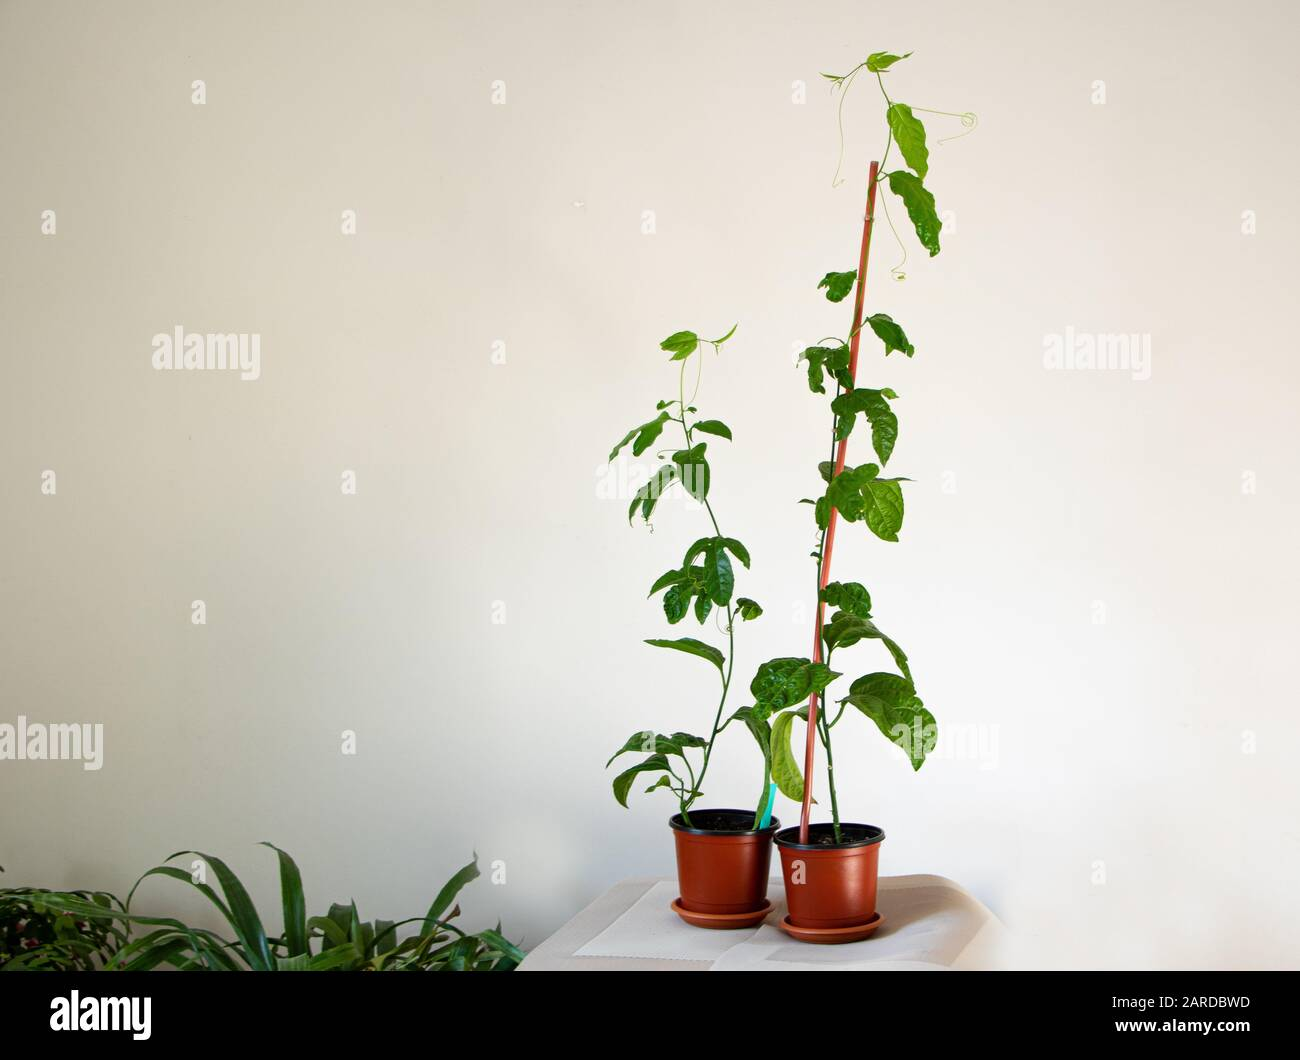 Passionfruit Plant High Resolution Stock Photography And Images Alamy